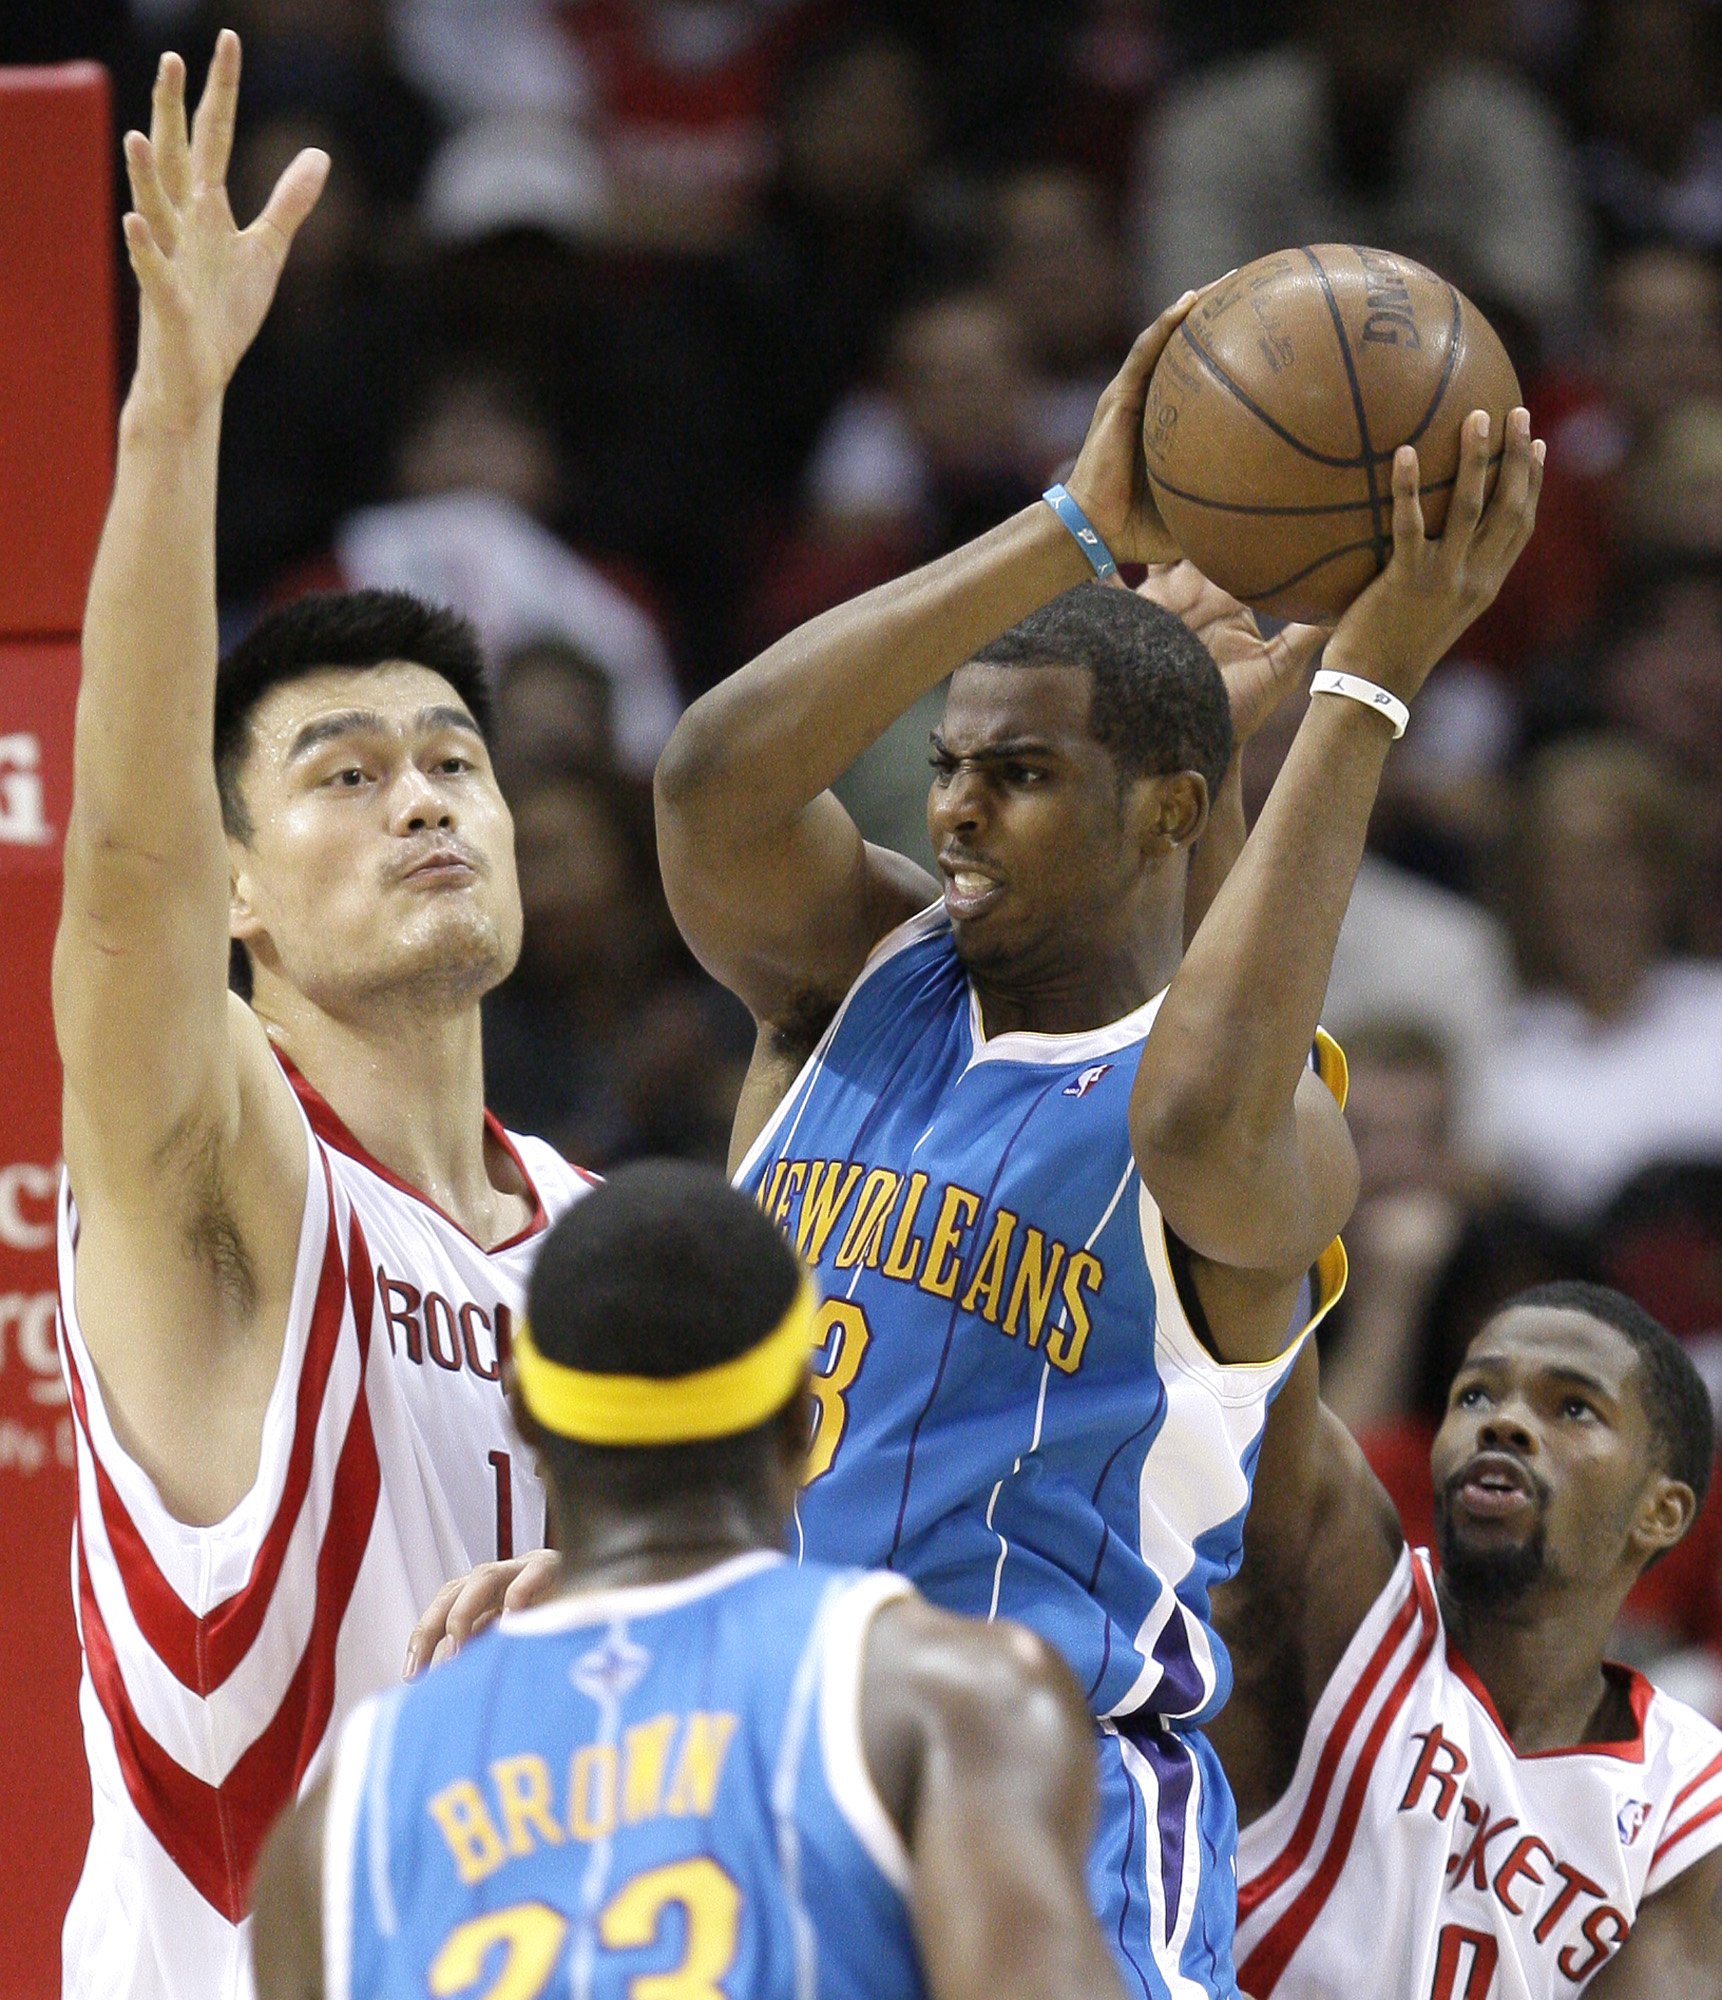 New Orleans Hornets' Chris Paul, center, looks to pass the ball as Houston Rockets' Yao Ming, left, of China, and Aaron Brooks, lower right, defend du...